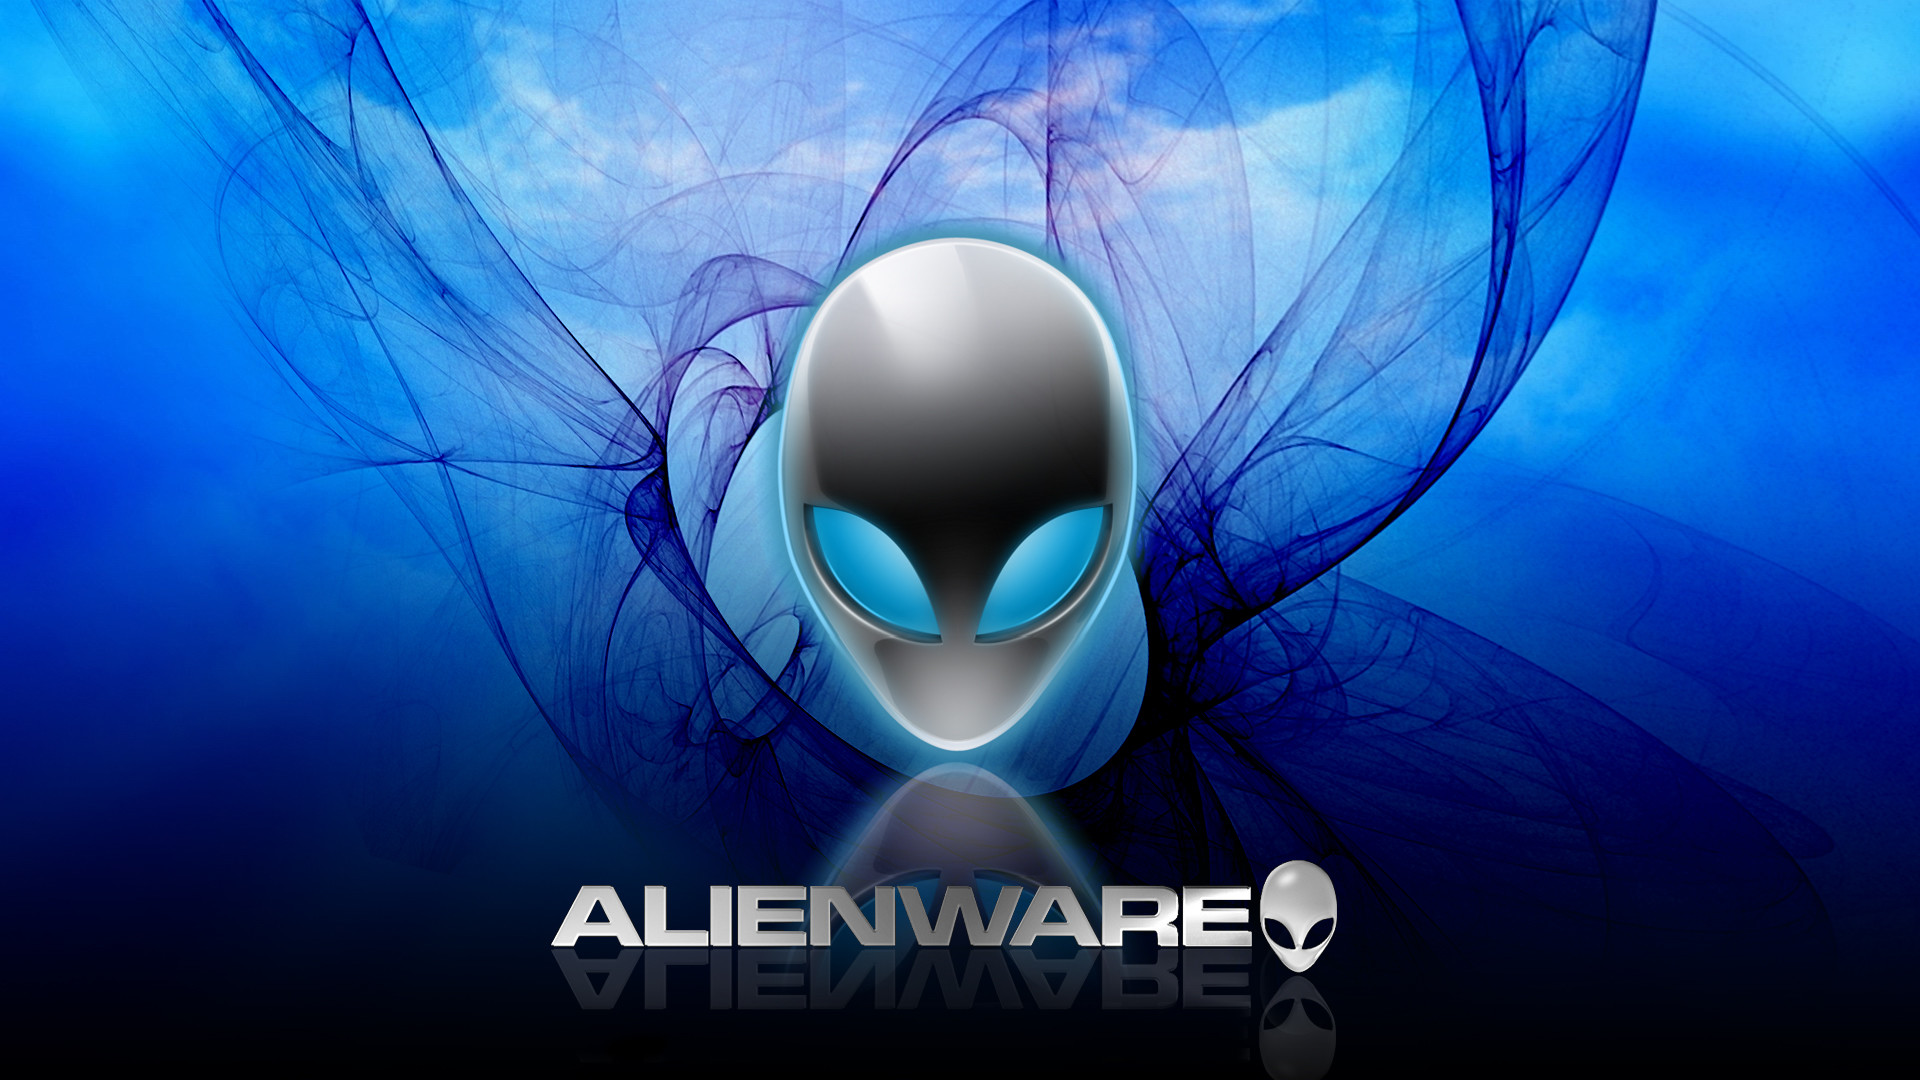 Alienware wallpapers for windows 7 wallpapersafari - 3840x2160 Alienware Wallpaper 3840 X 2160 Wallpapersafari